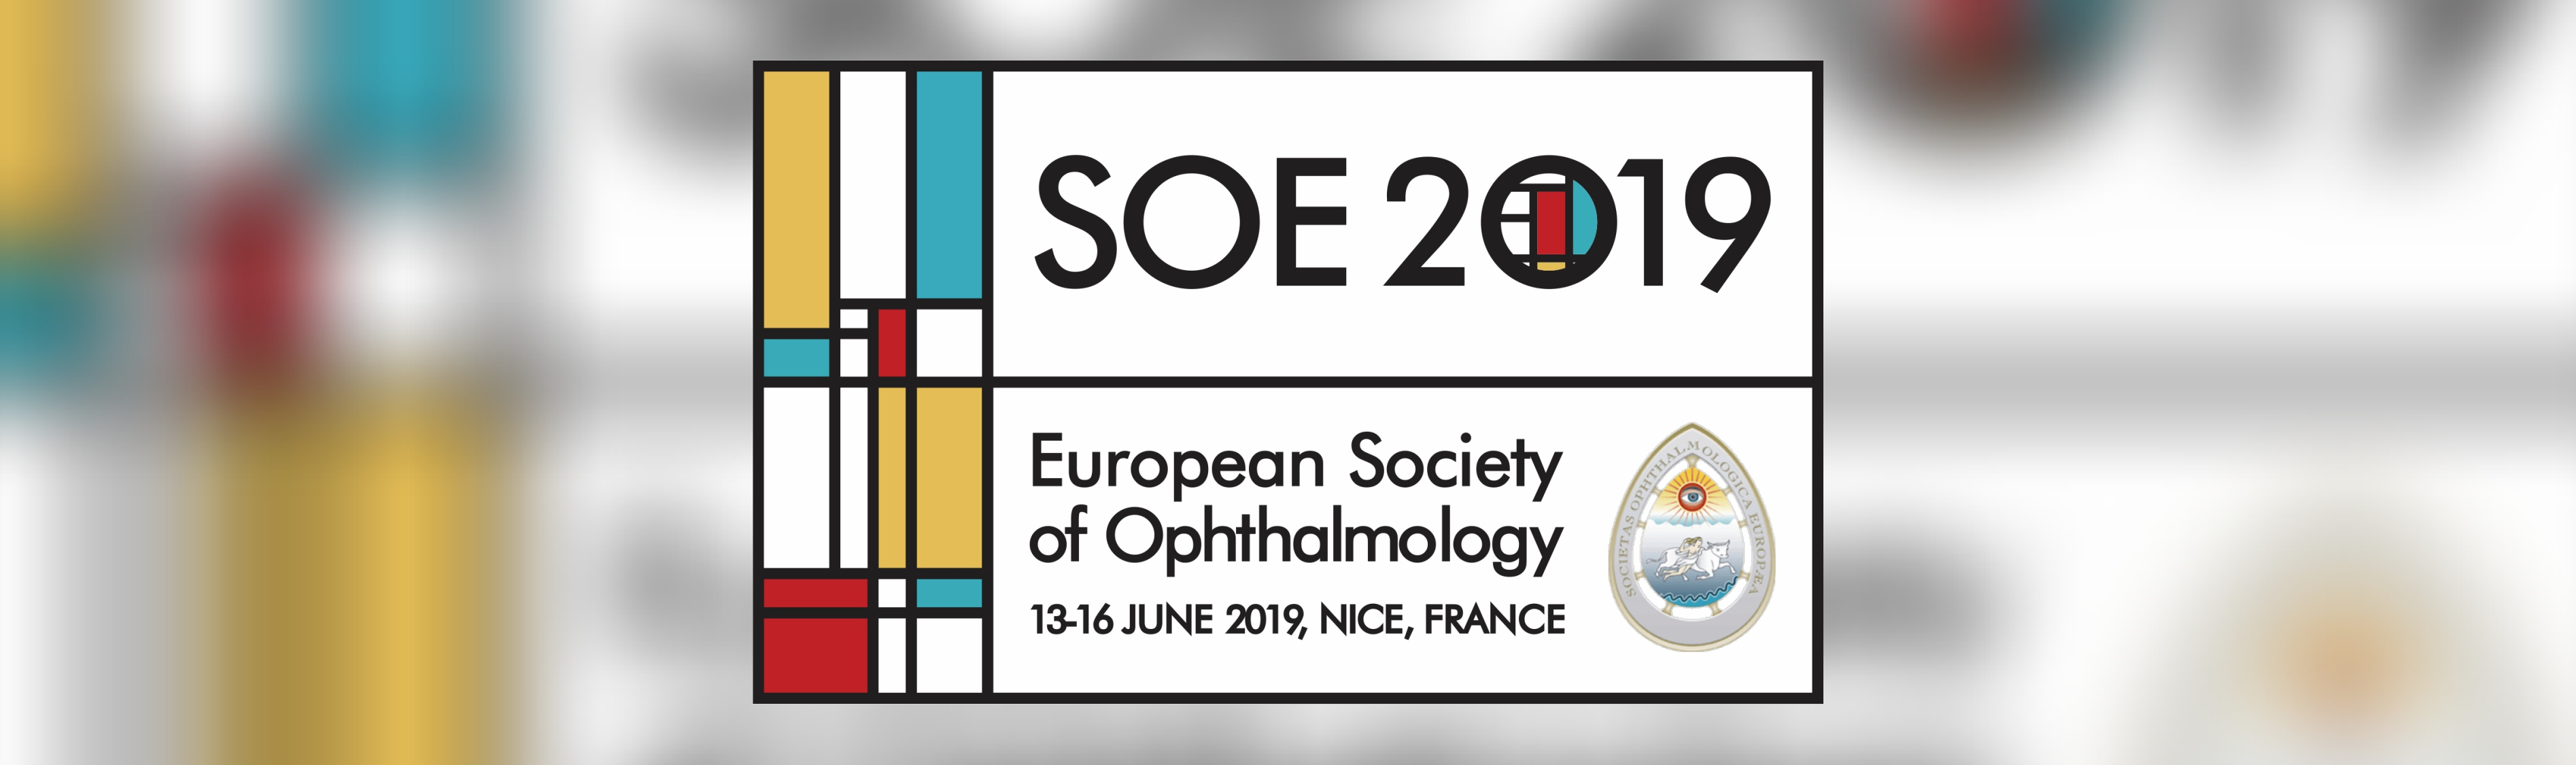 SOE2019 European Society of Ophthalmology